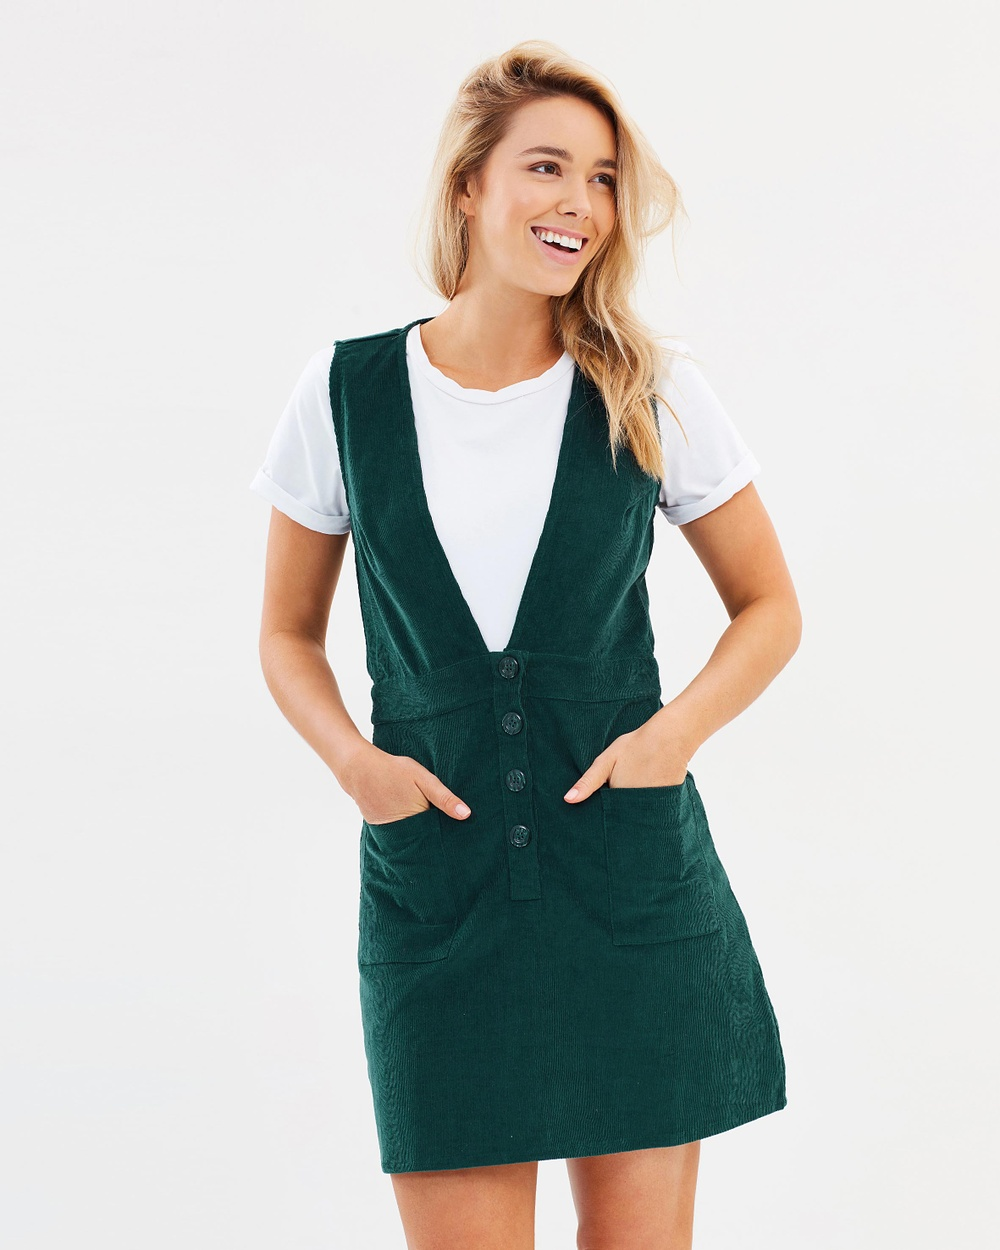 Rue Stiic Bonnie Overall Dress Dresses Teal Bonnie Overall Dress